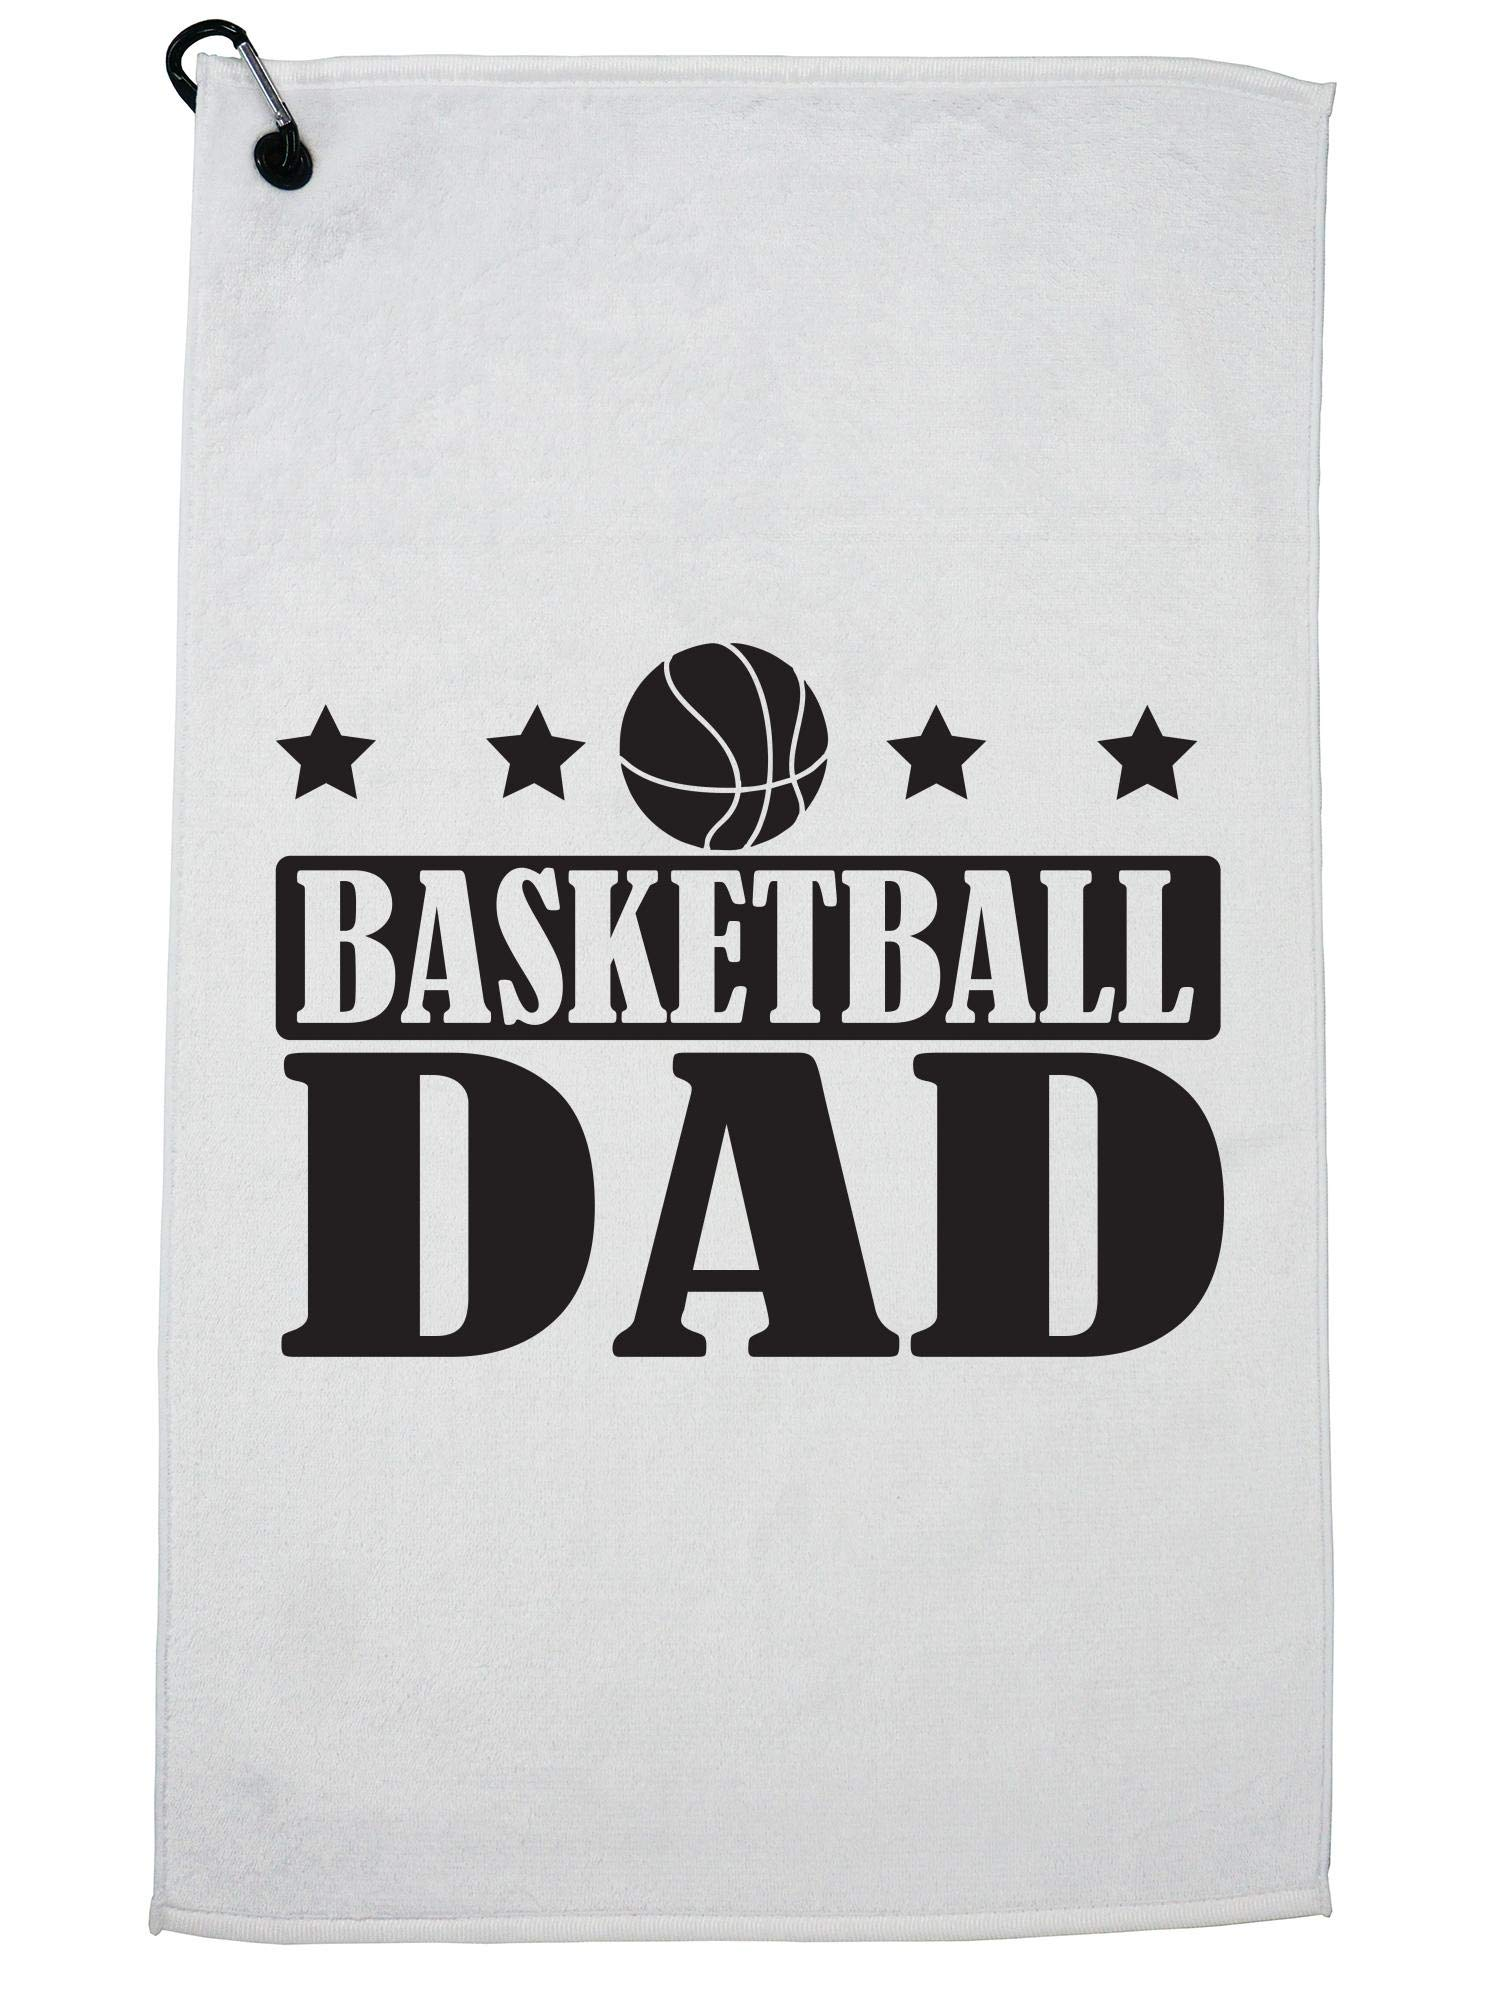 Hollywood Thread Basketball Dad Support Game Golf Towel with Carabiner Clip by Hollywood Thread